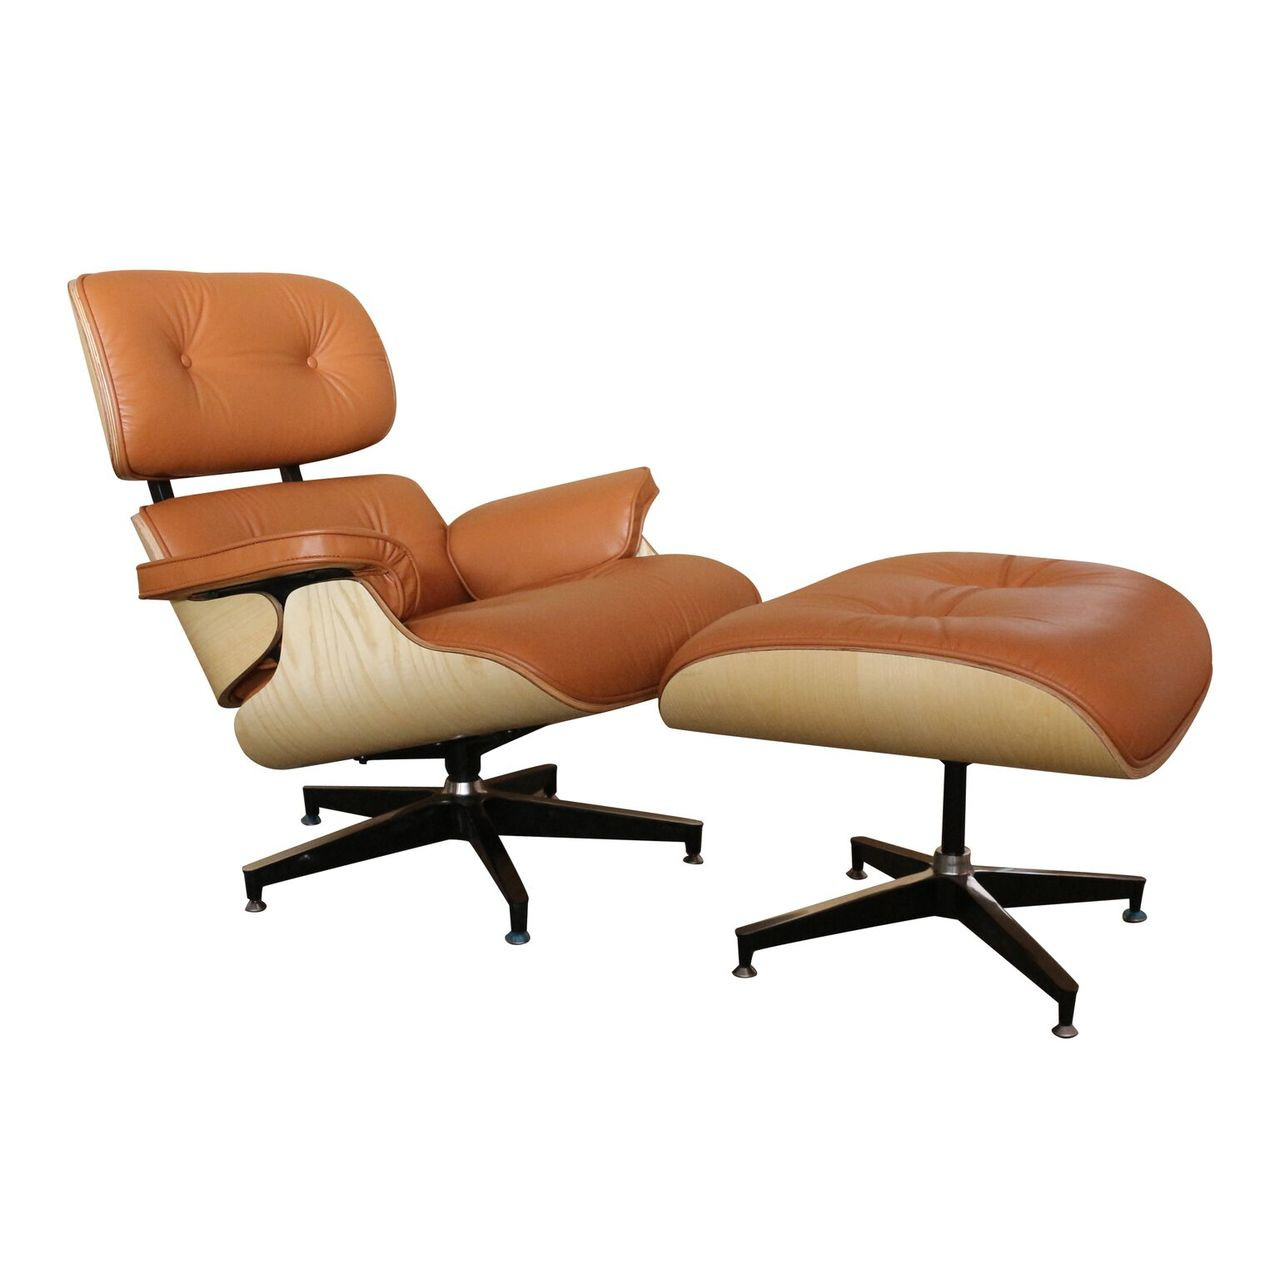 Charles & Ray Eames Sessel Replica Eames Lounge Chair Ottoman Tan Italian Leather Natural Frame